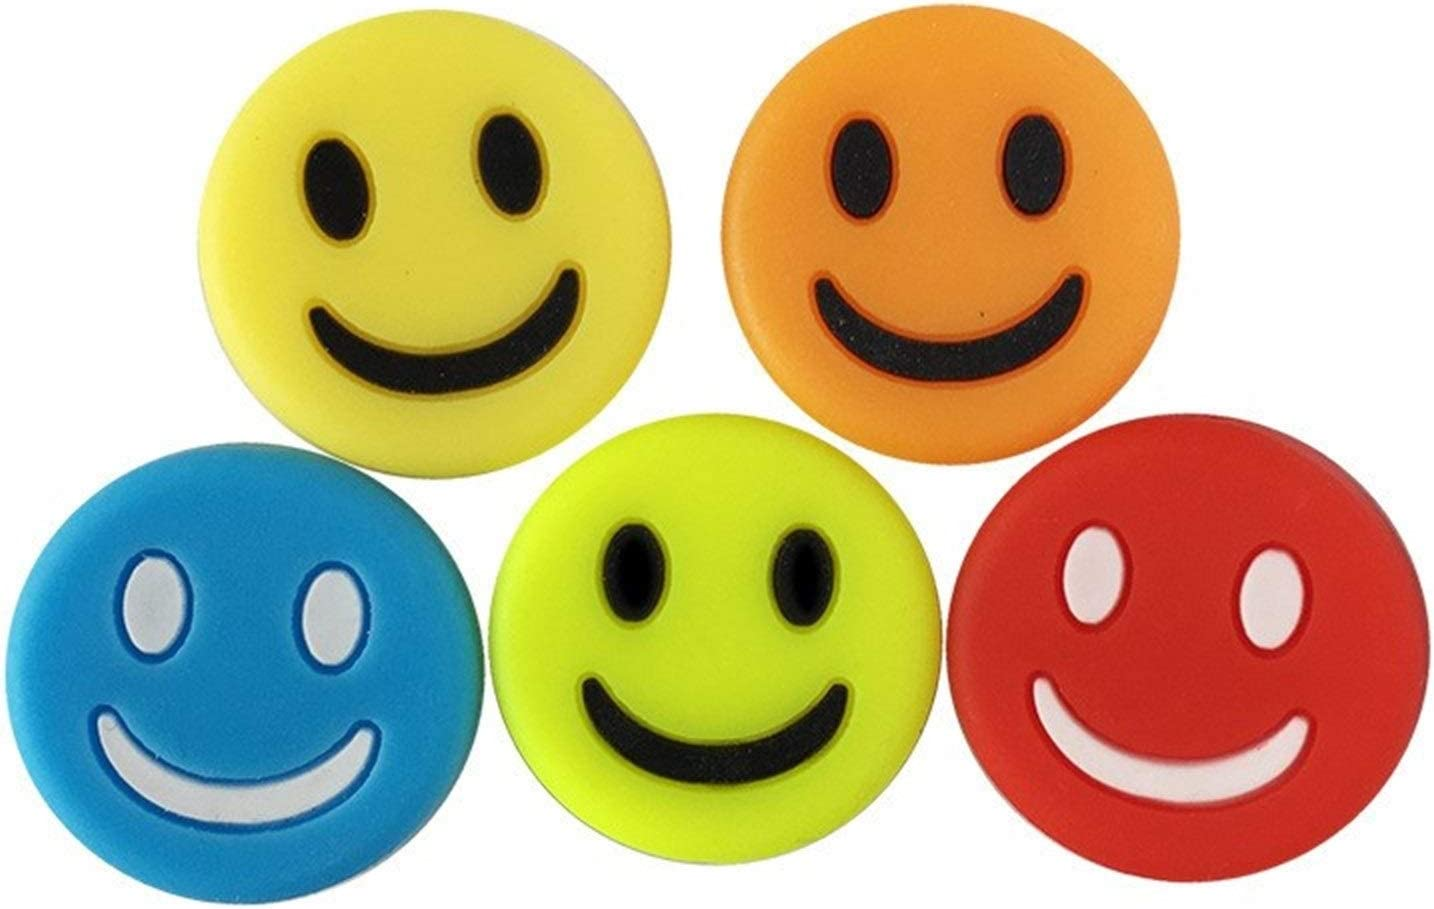 WESET Smiling Tennis Japan's All items in the store largest assortment Vibration Dampers Sho Funny Reduce Dampener